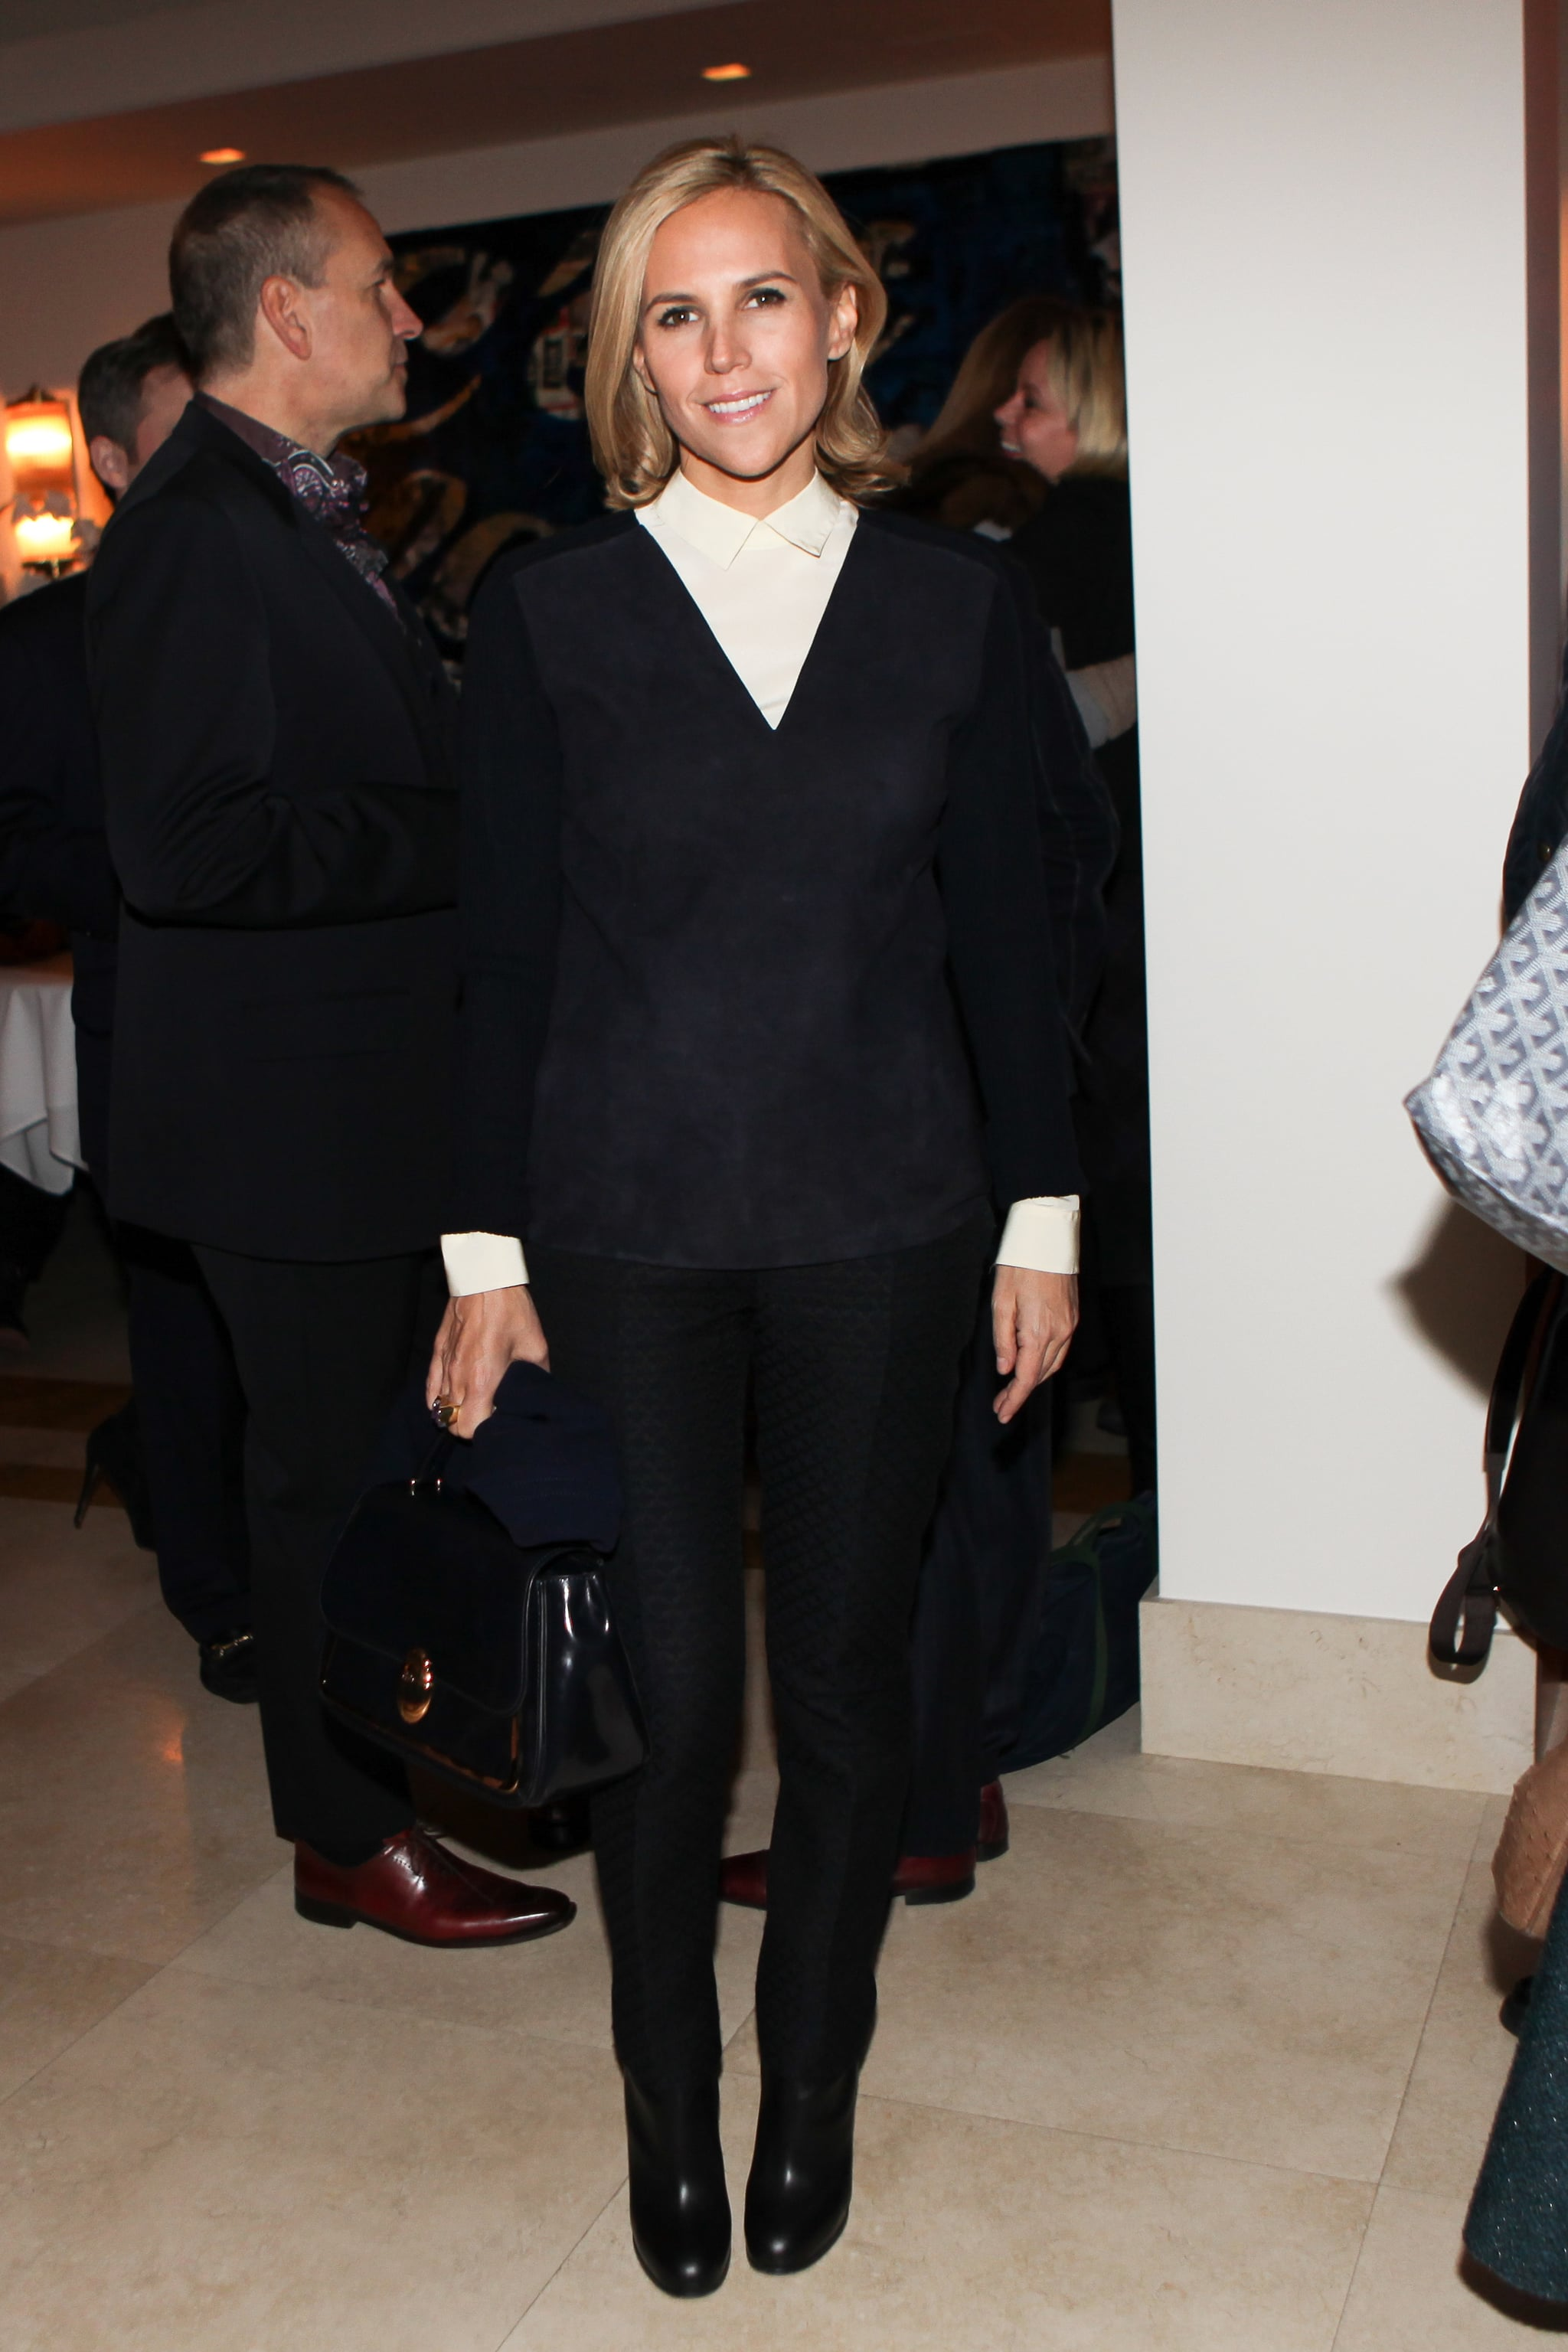 Tory Burch at the Kara Ross boutique grand opening.